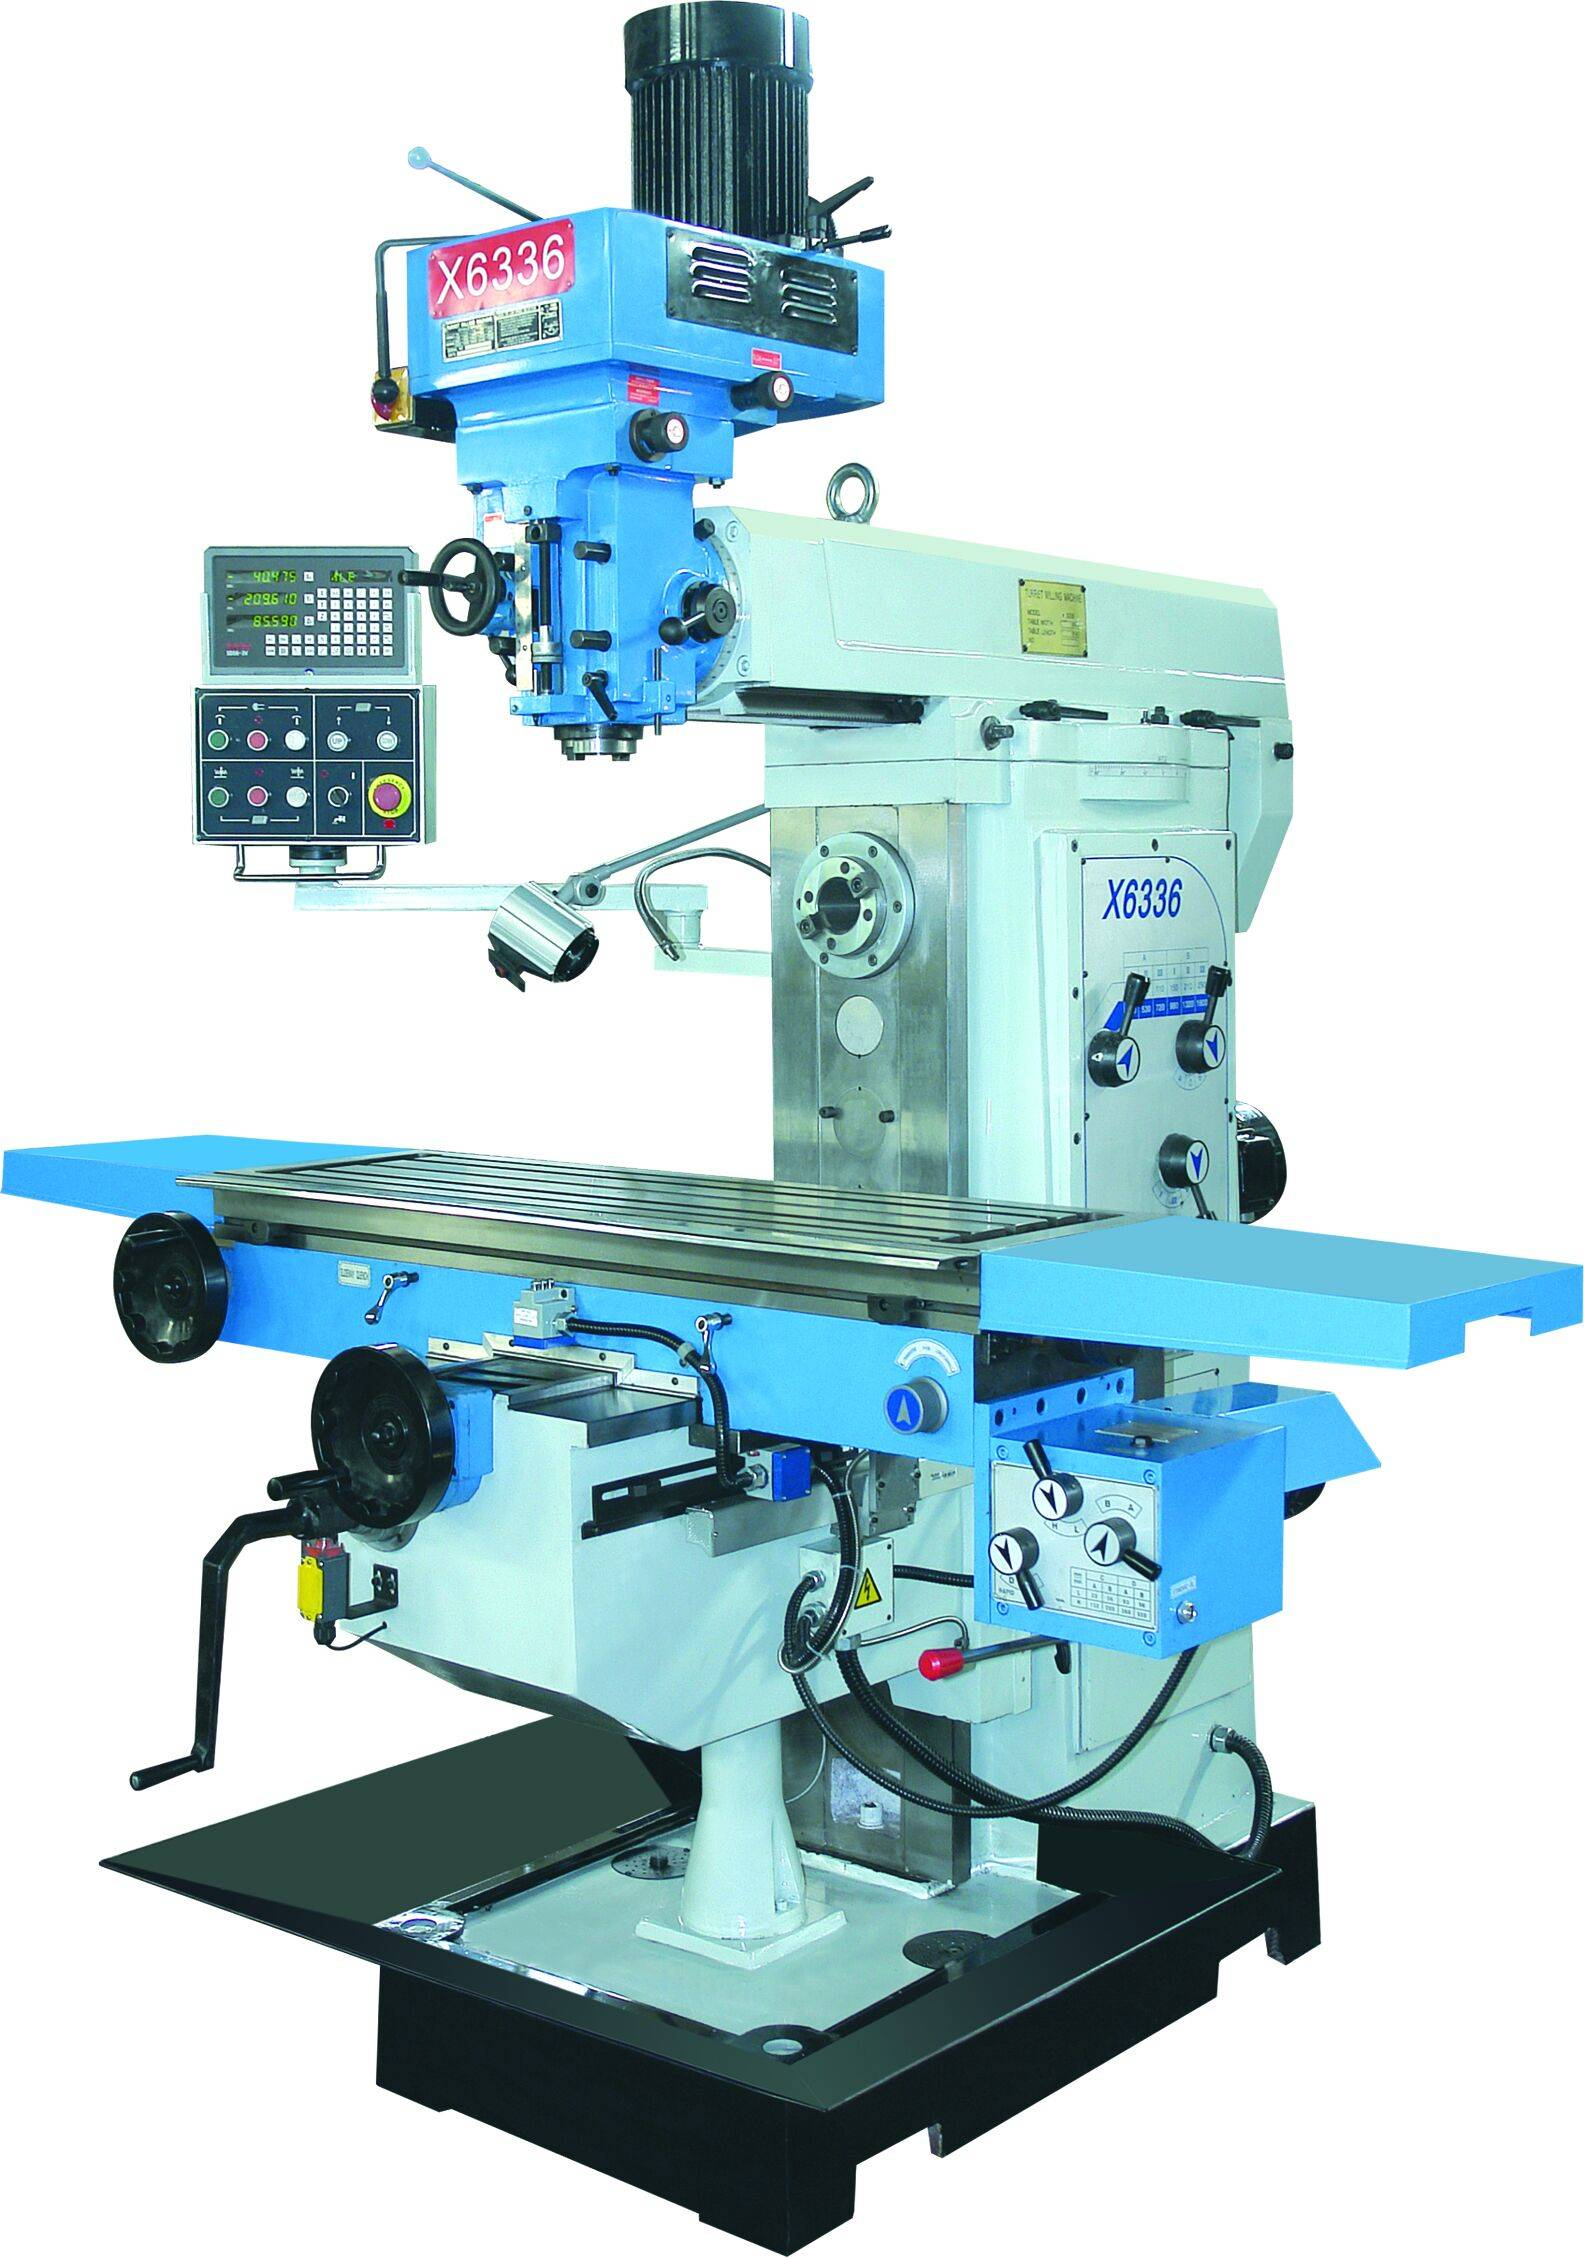 DRO at all axies universal milling machine